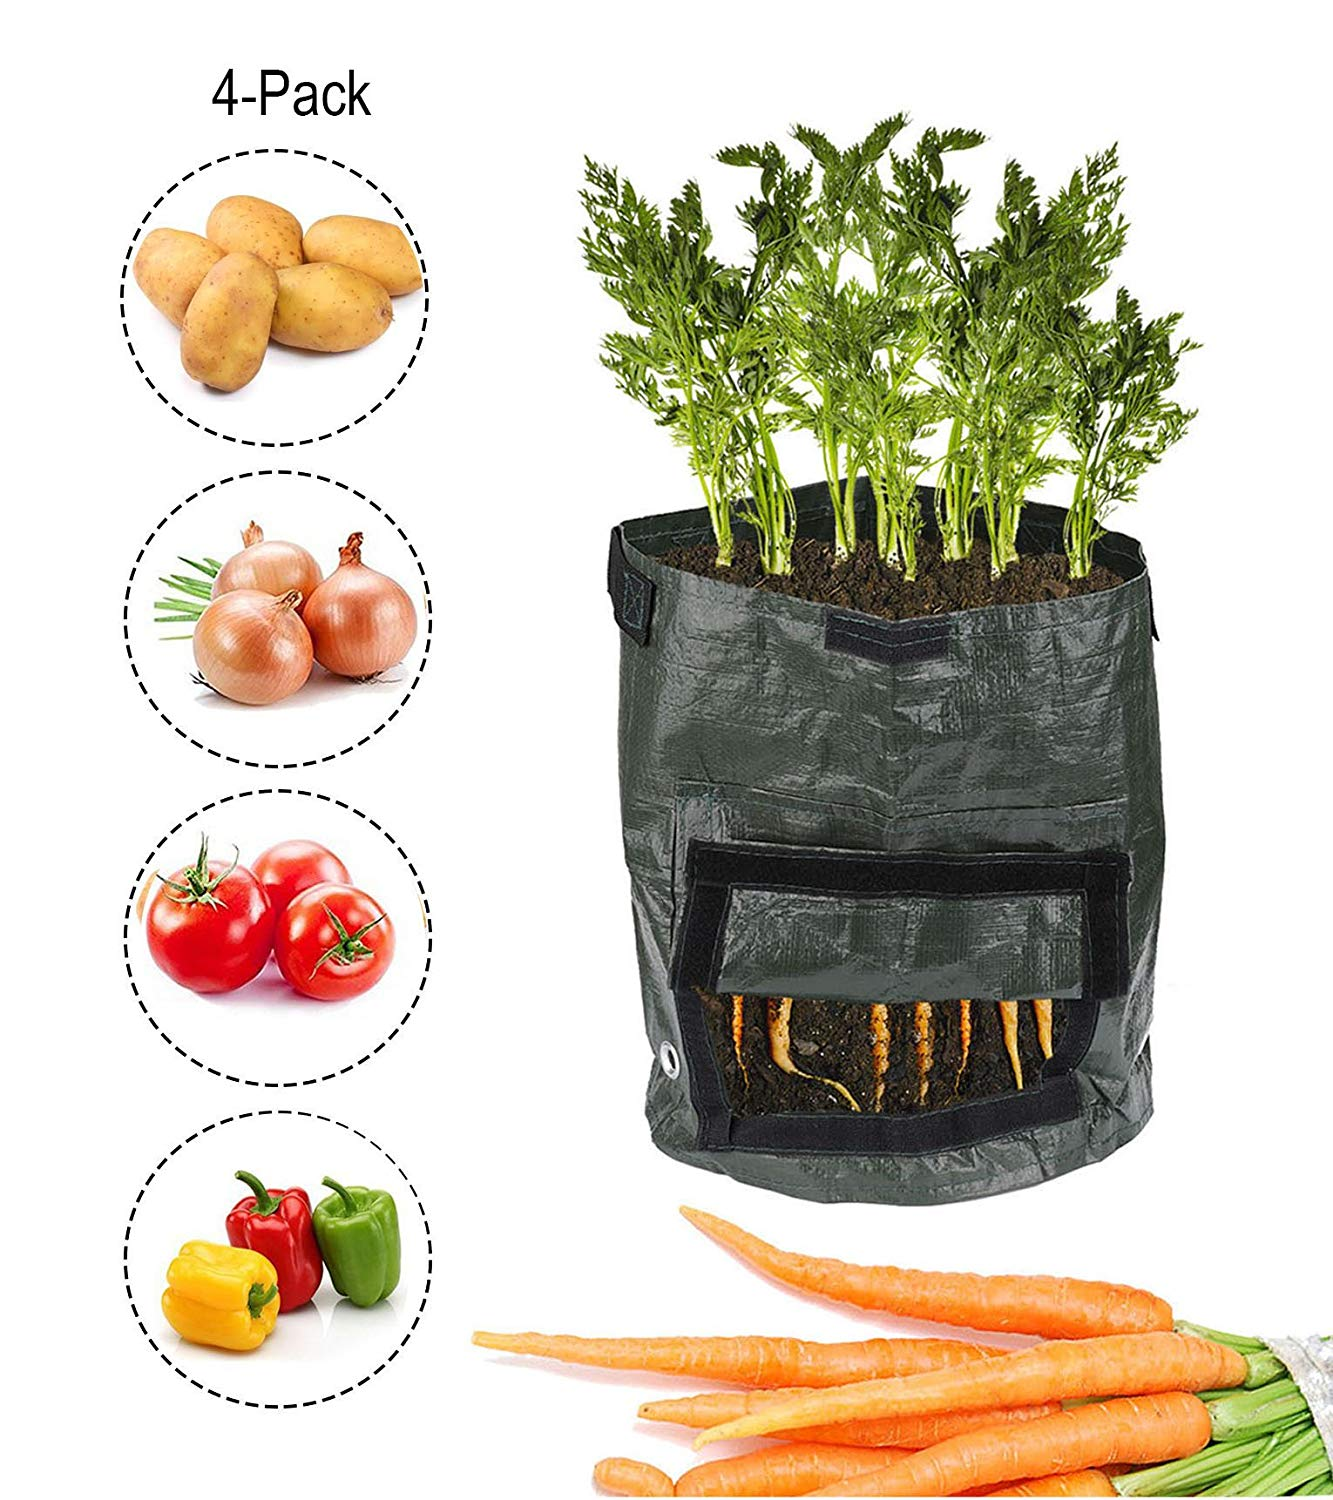 7Gallon Plant Grow Bags Garden Planter Bags Potato Growing Bags with Handles&Acess Flap,Planting Container,Eco-friendly Durable Reusable,for Harvesting Potato,Carrot,Onion,Tomato,Vegetable (4-Pack)